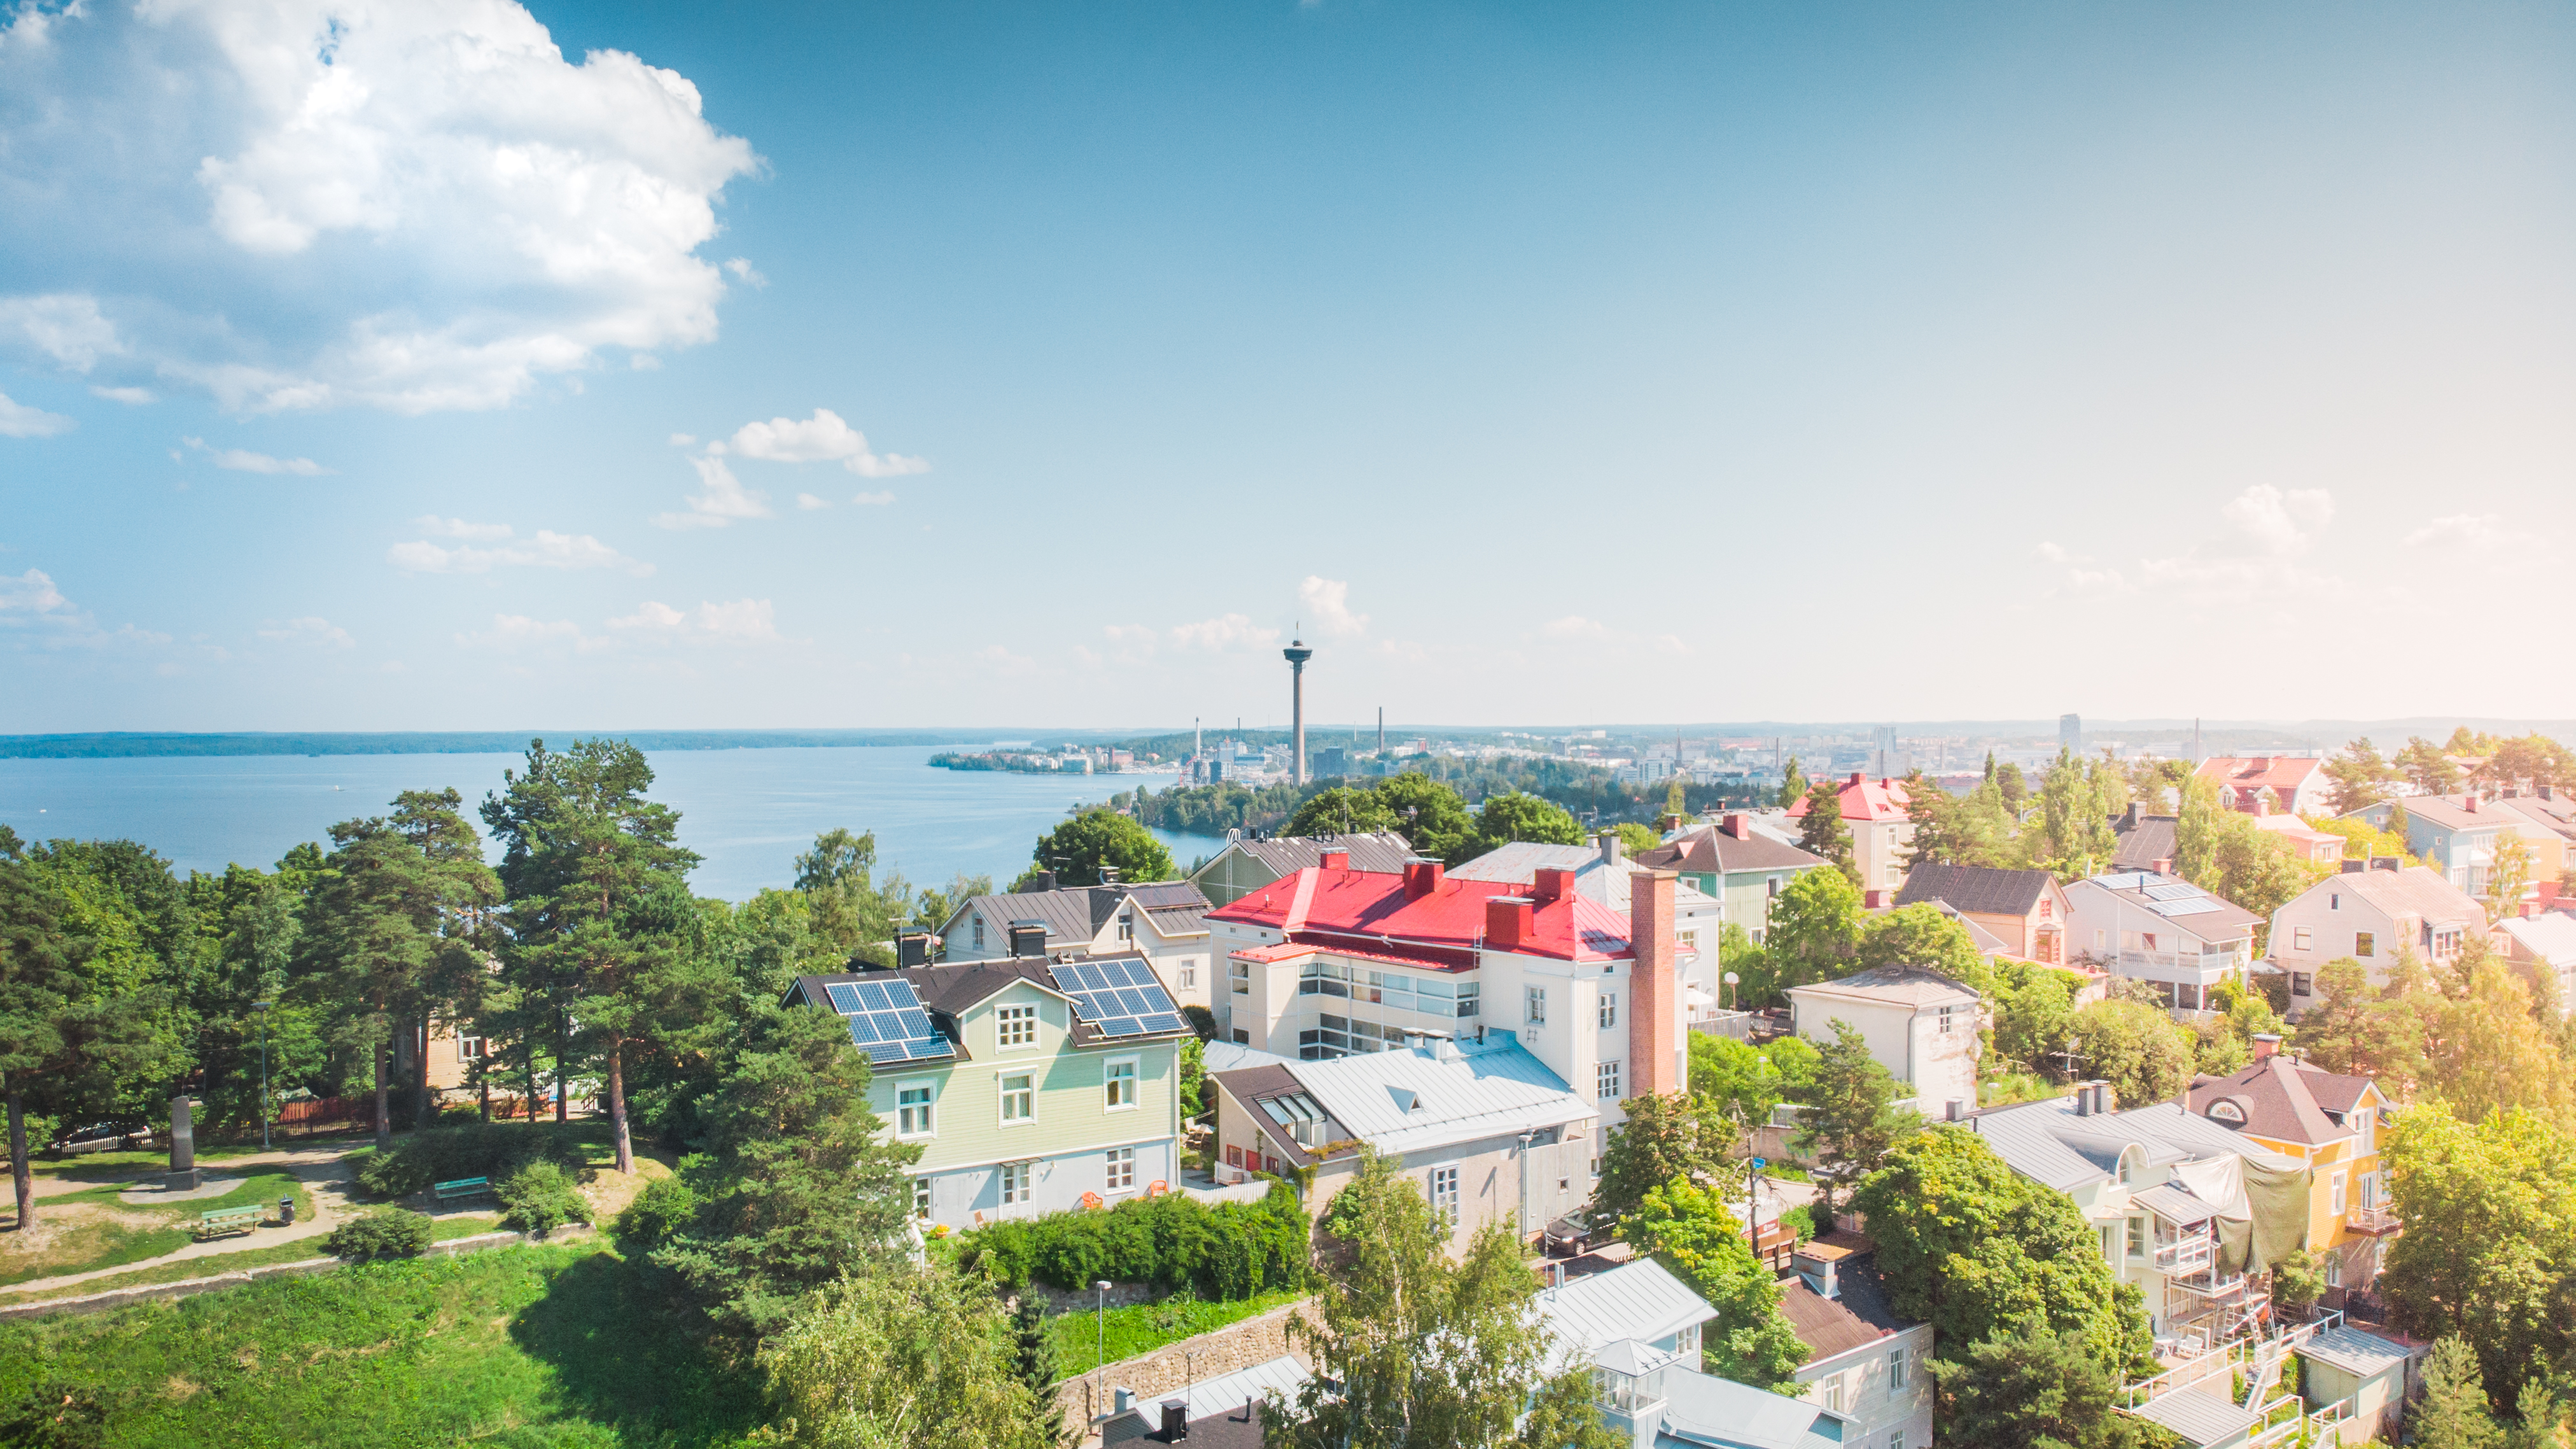 Picture of Tampere, photo by Visit Tampere/Laura Vanzo